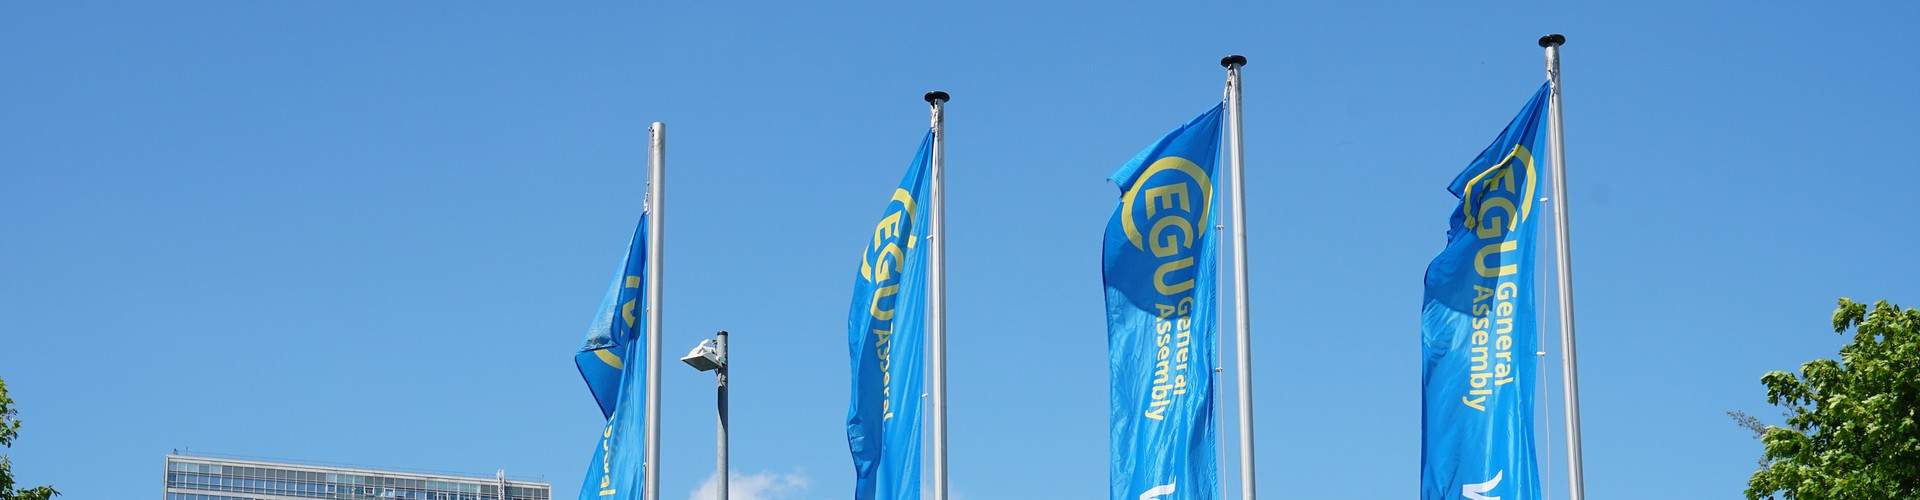 EGU flags (Credit: EGU/Foto Pfluegl)